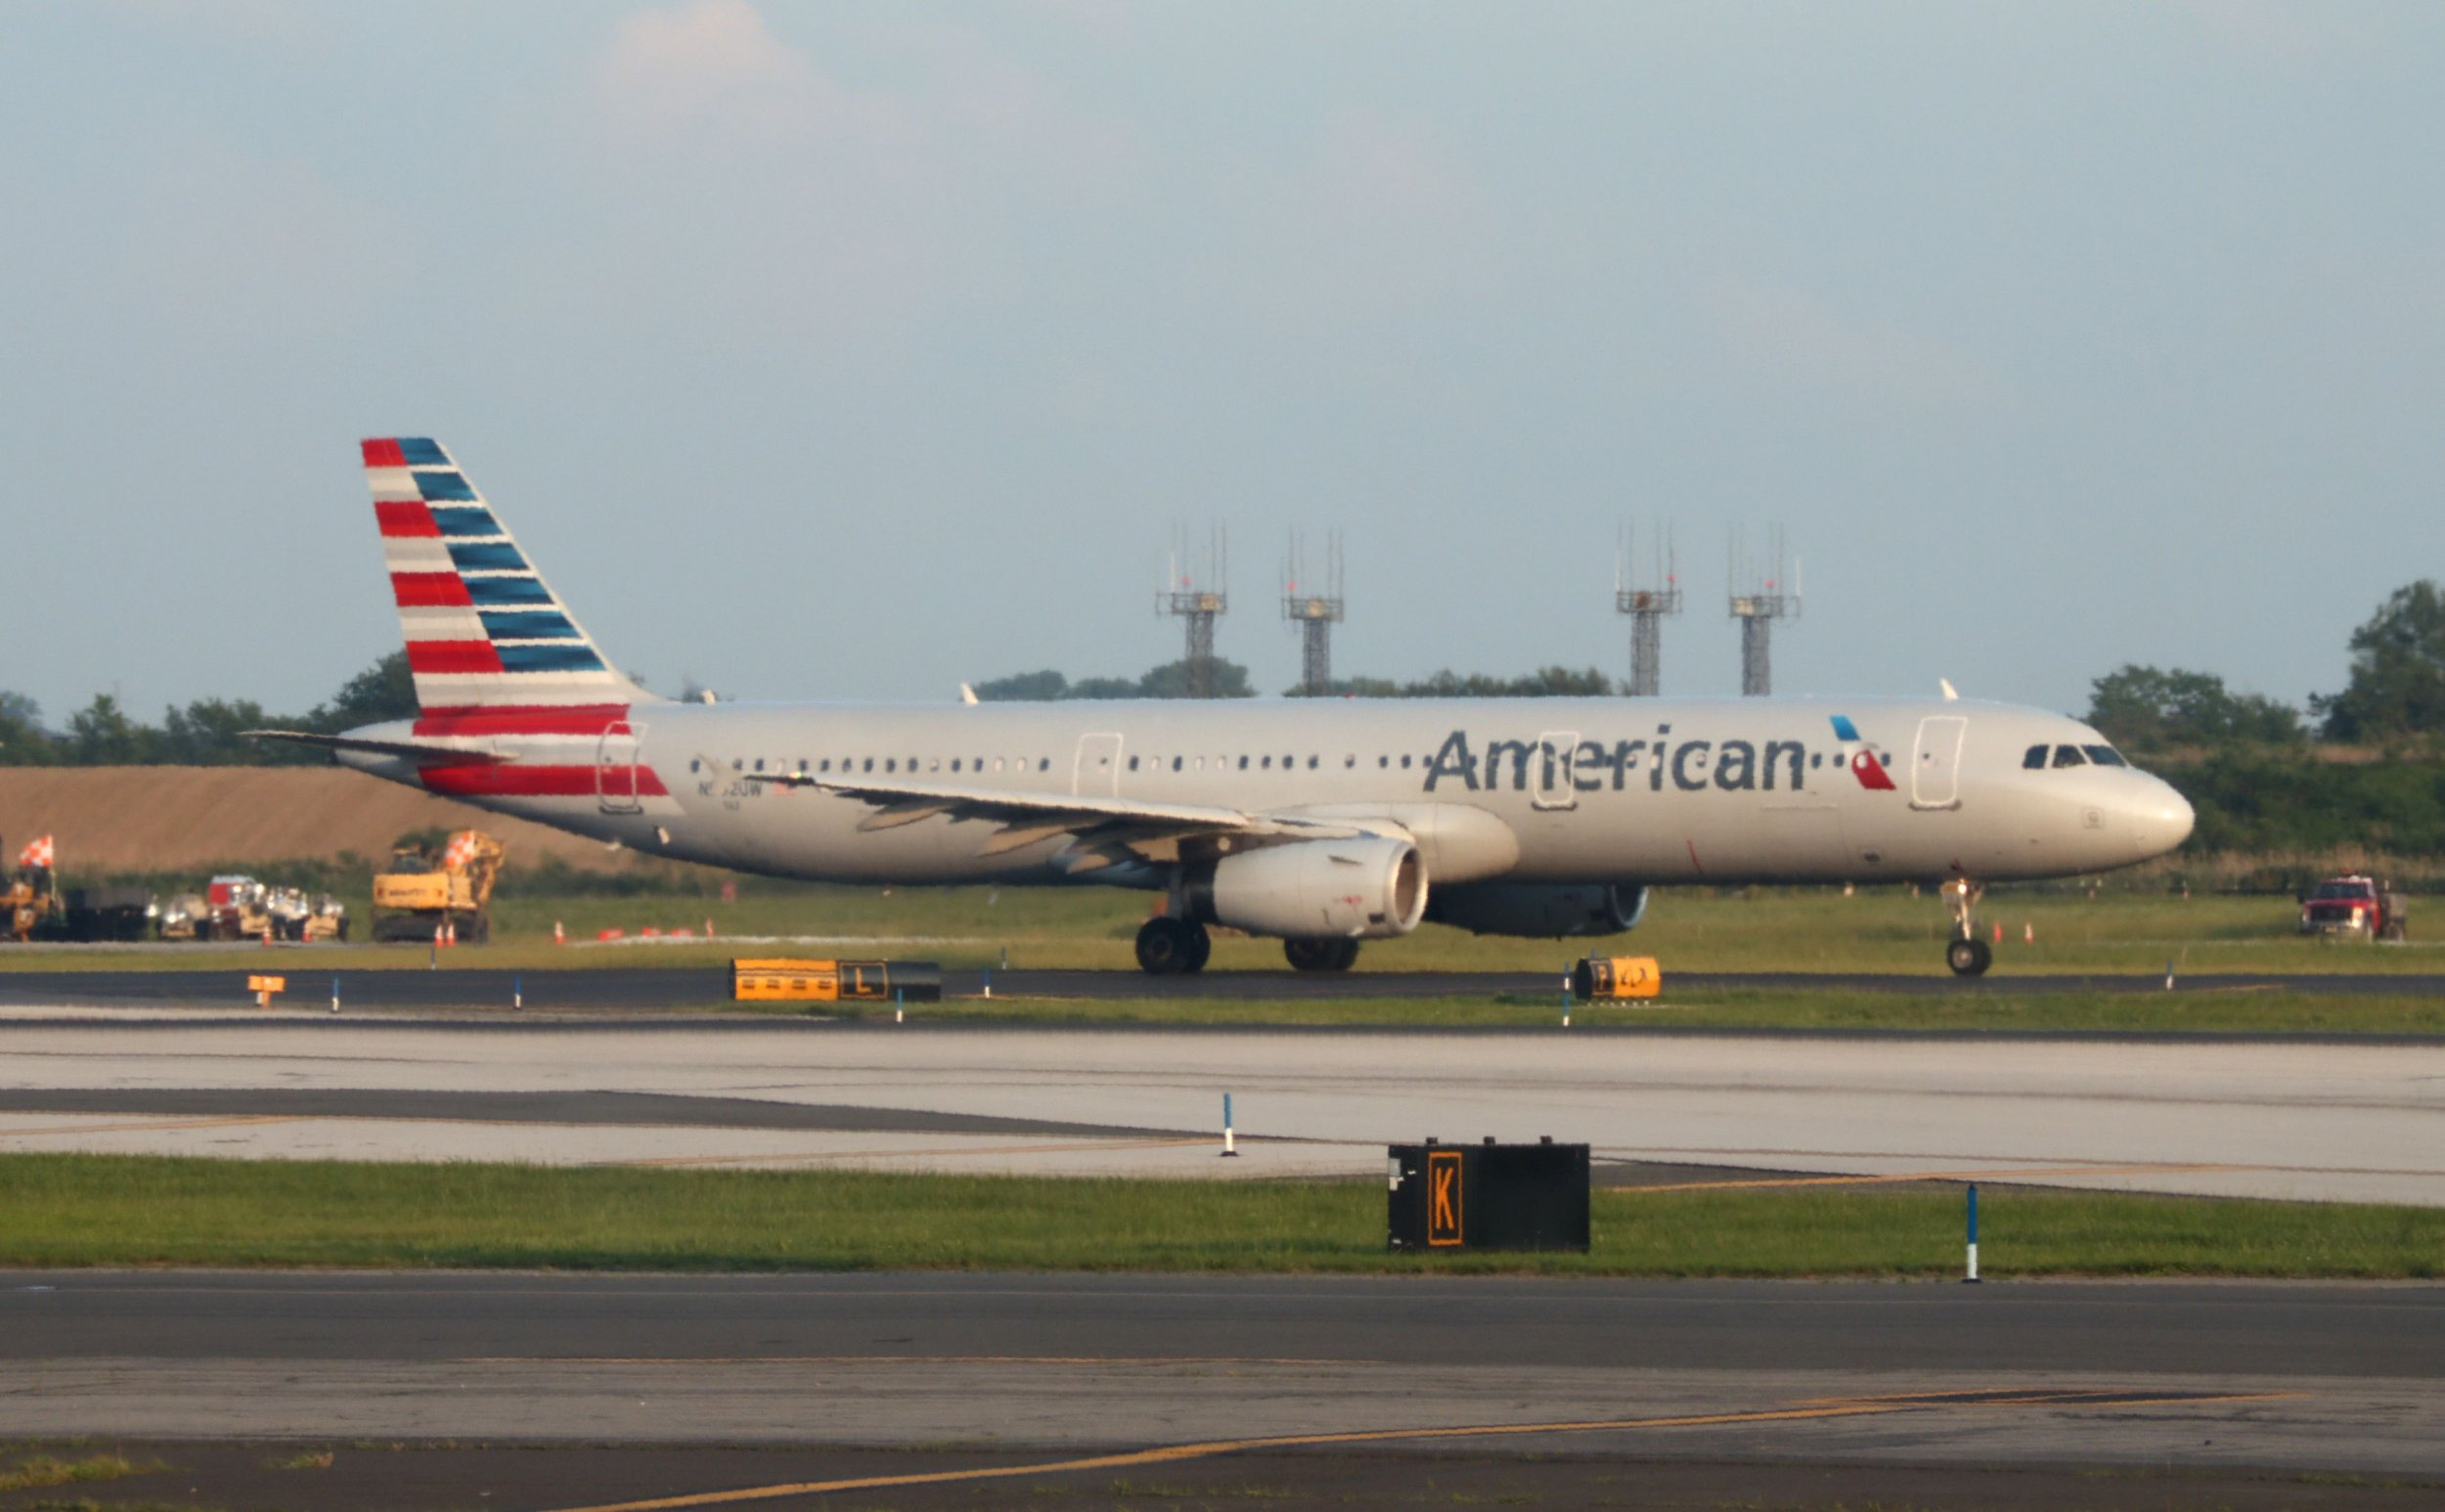 08_23_American-Airlines